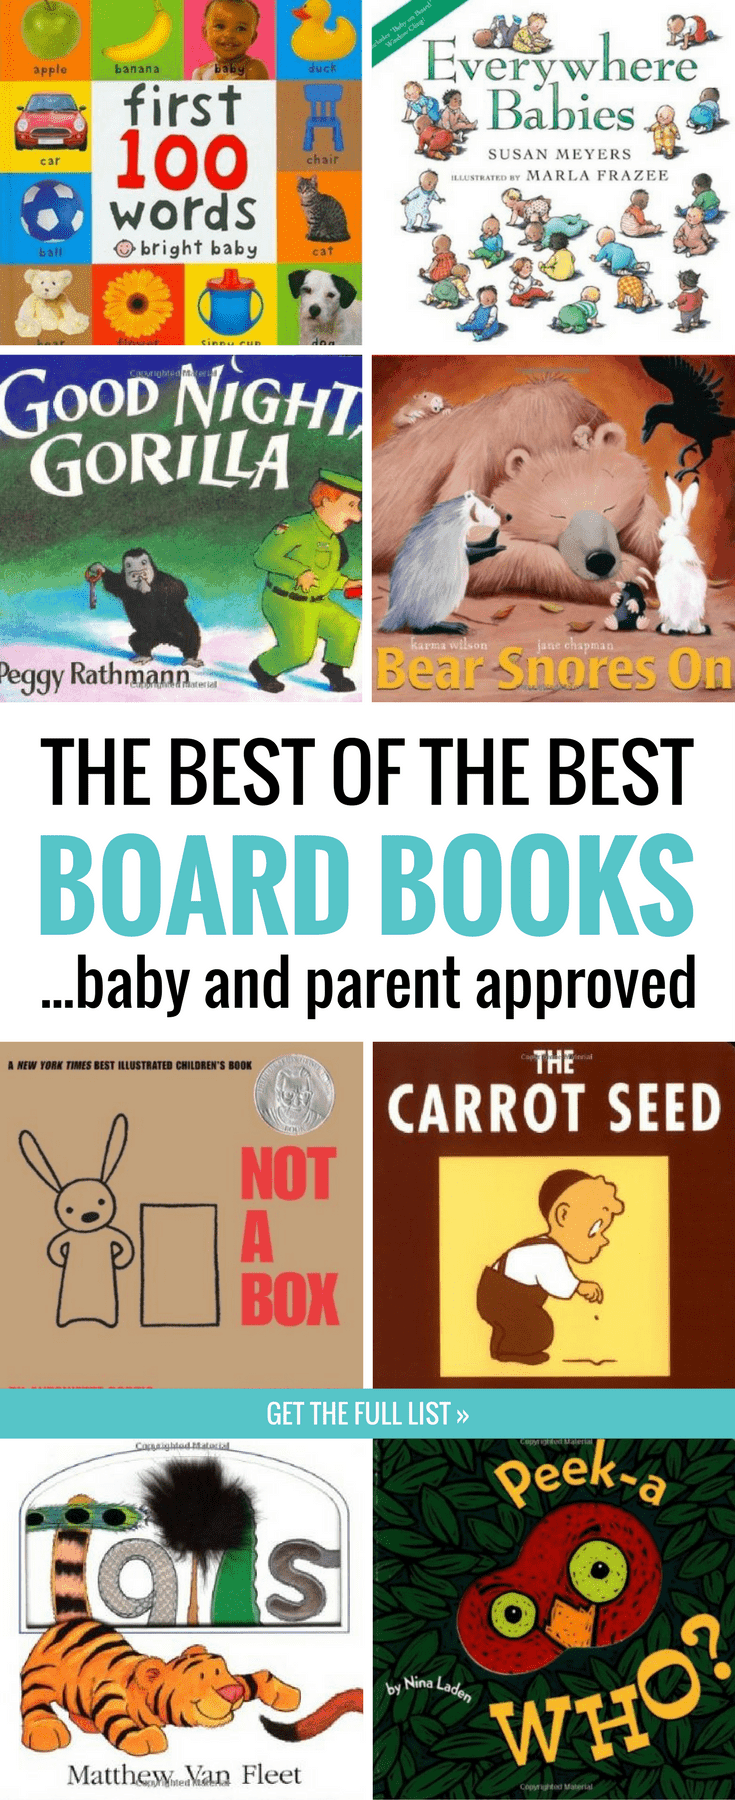 The Best Baby Board Books That Will Delight Your Baby (And You)